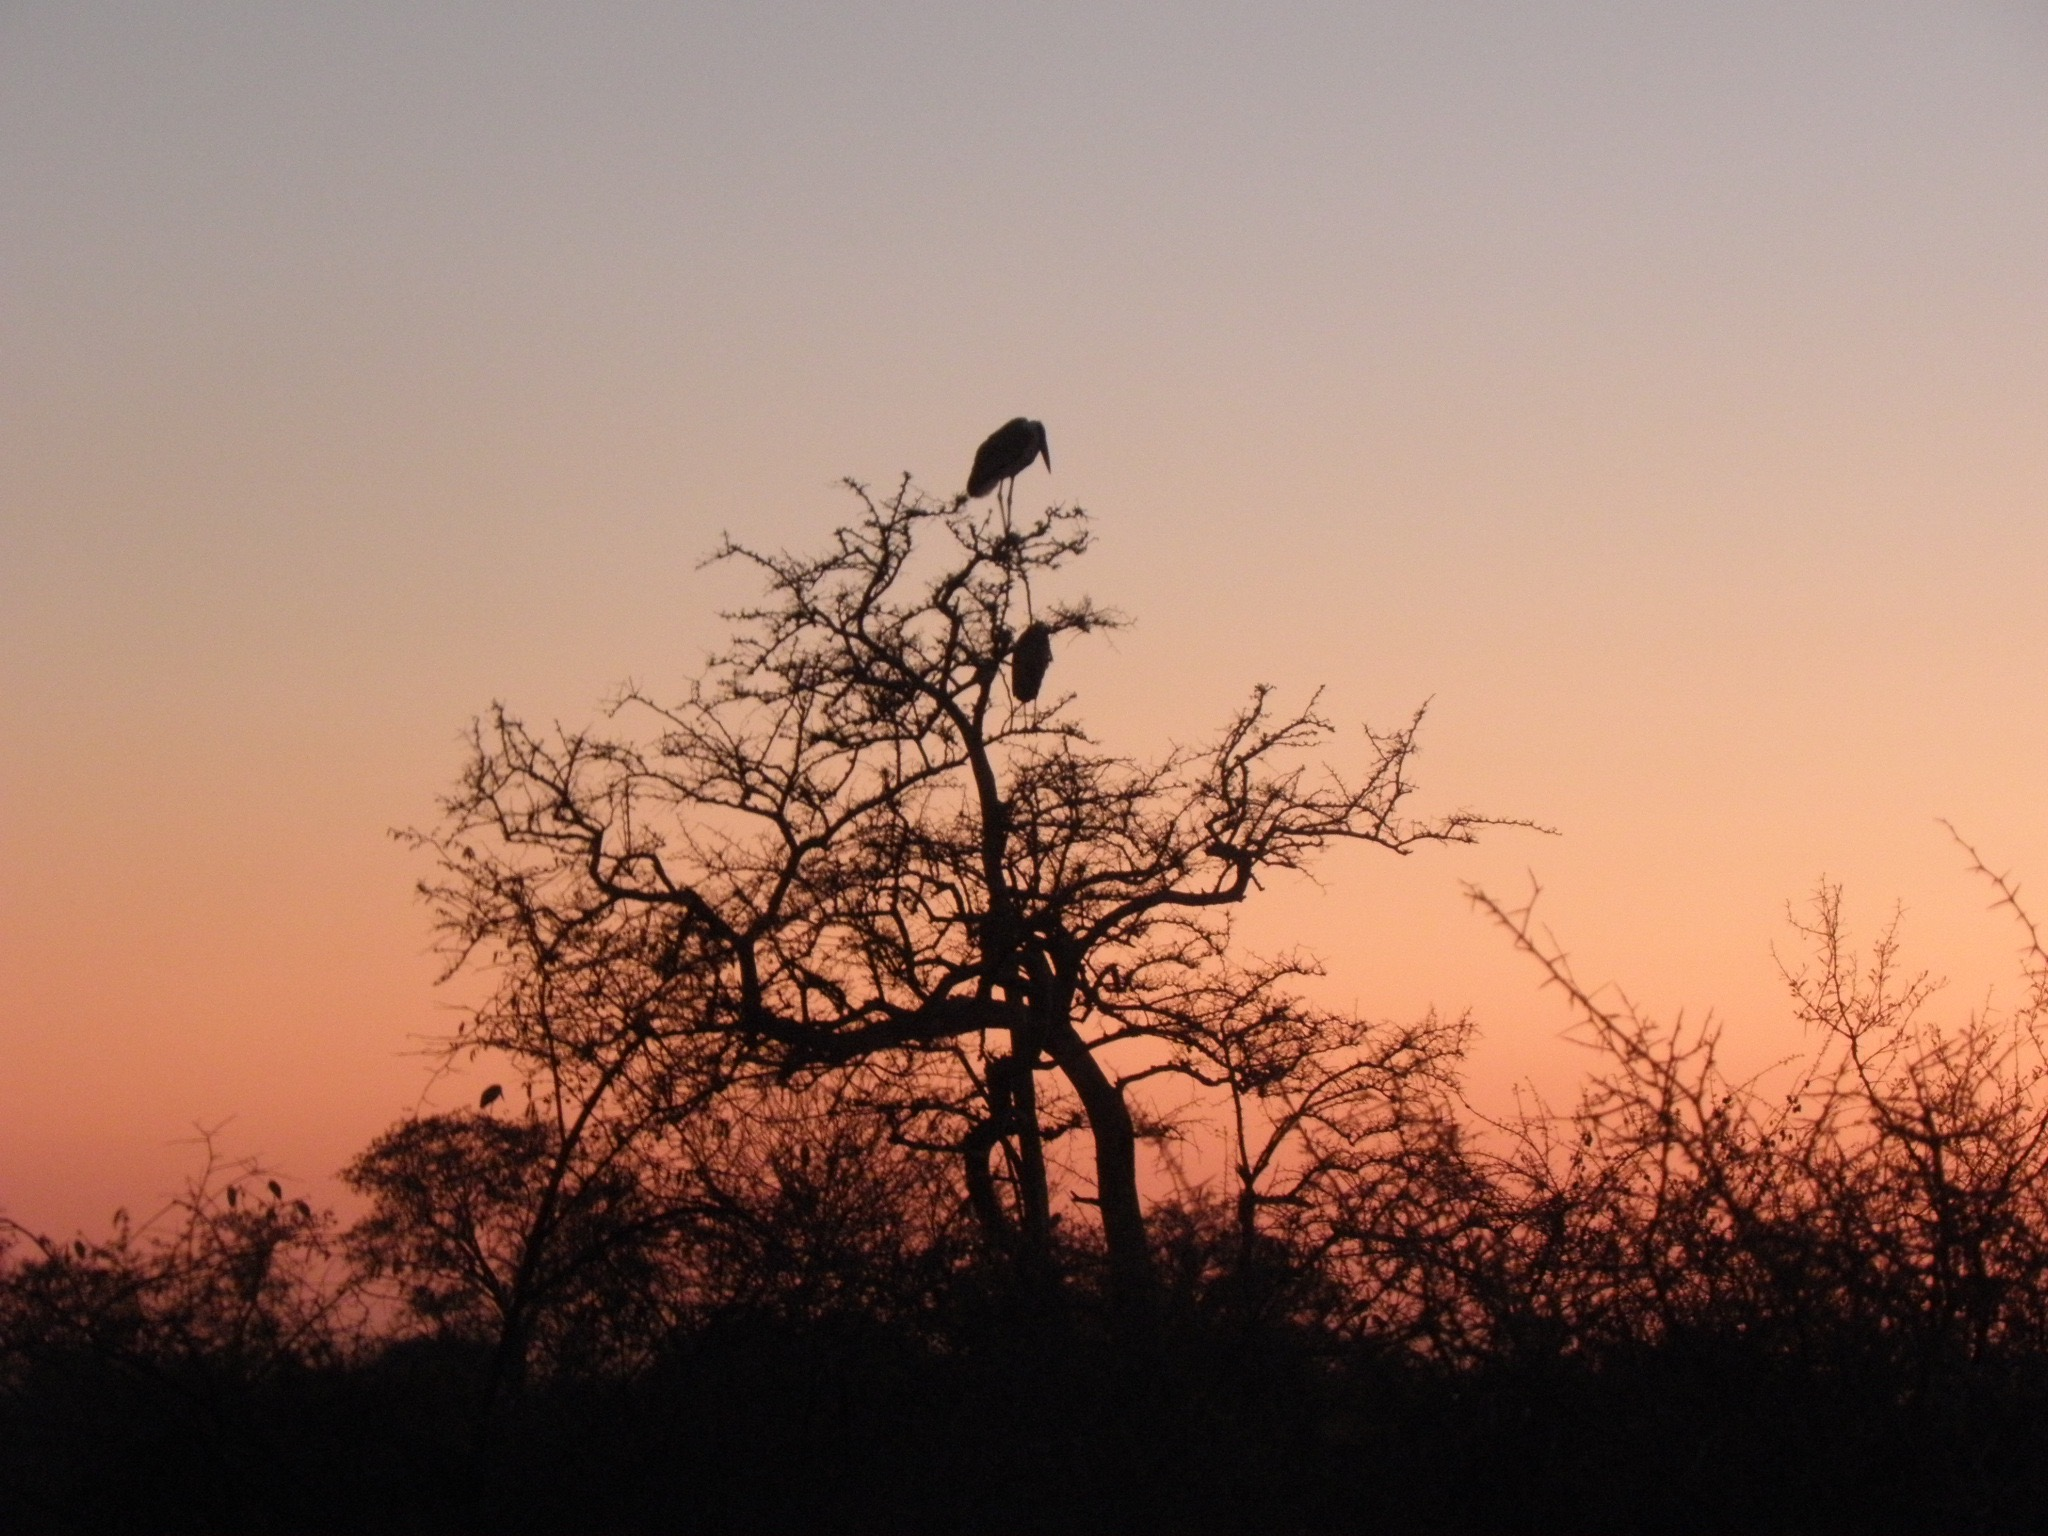 A marabou stork gains the sunrise on my final morning in Kruger